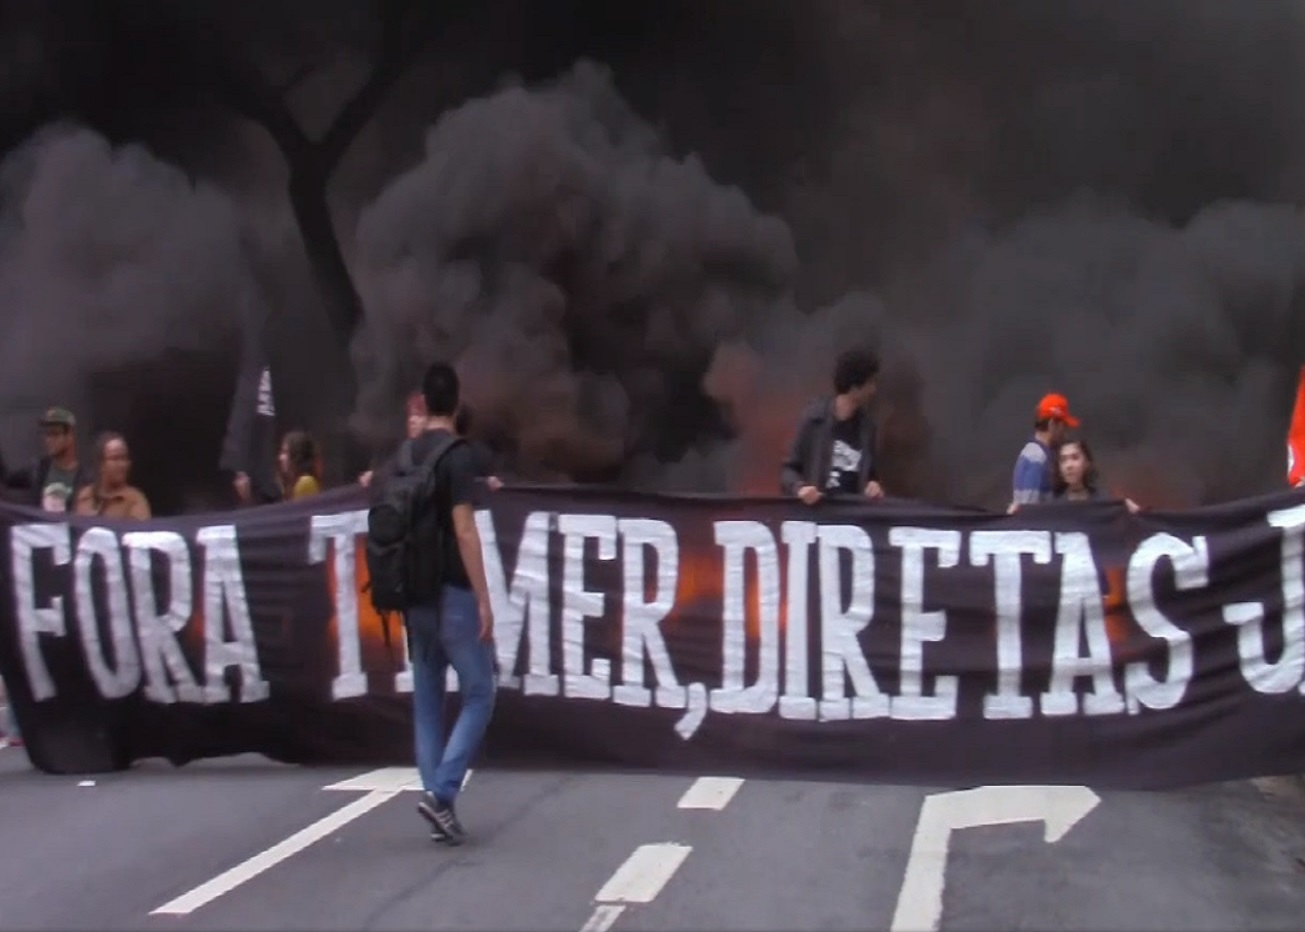 The Right to the City and the Brazilian General Strike: Short film shows housing activists joining with MST members to shut down major avenue in downtown São Paulo